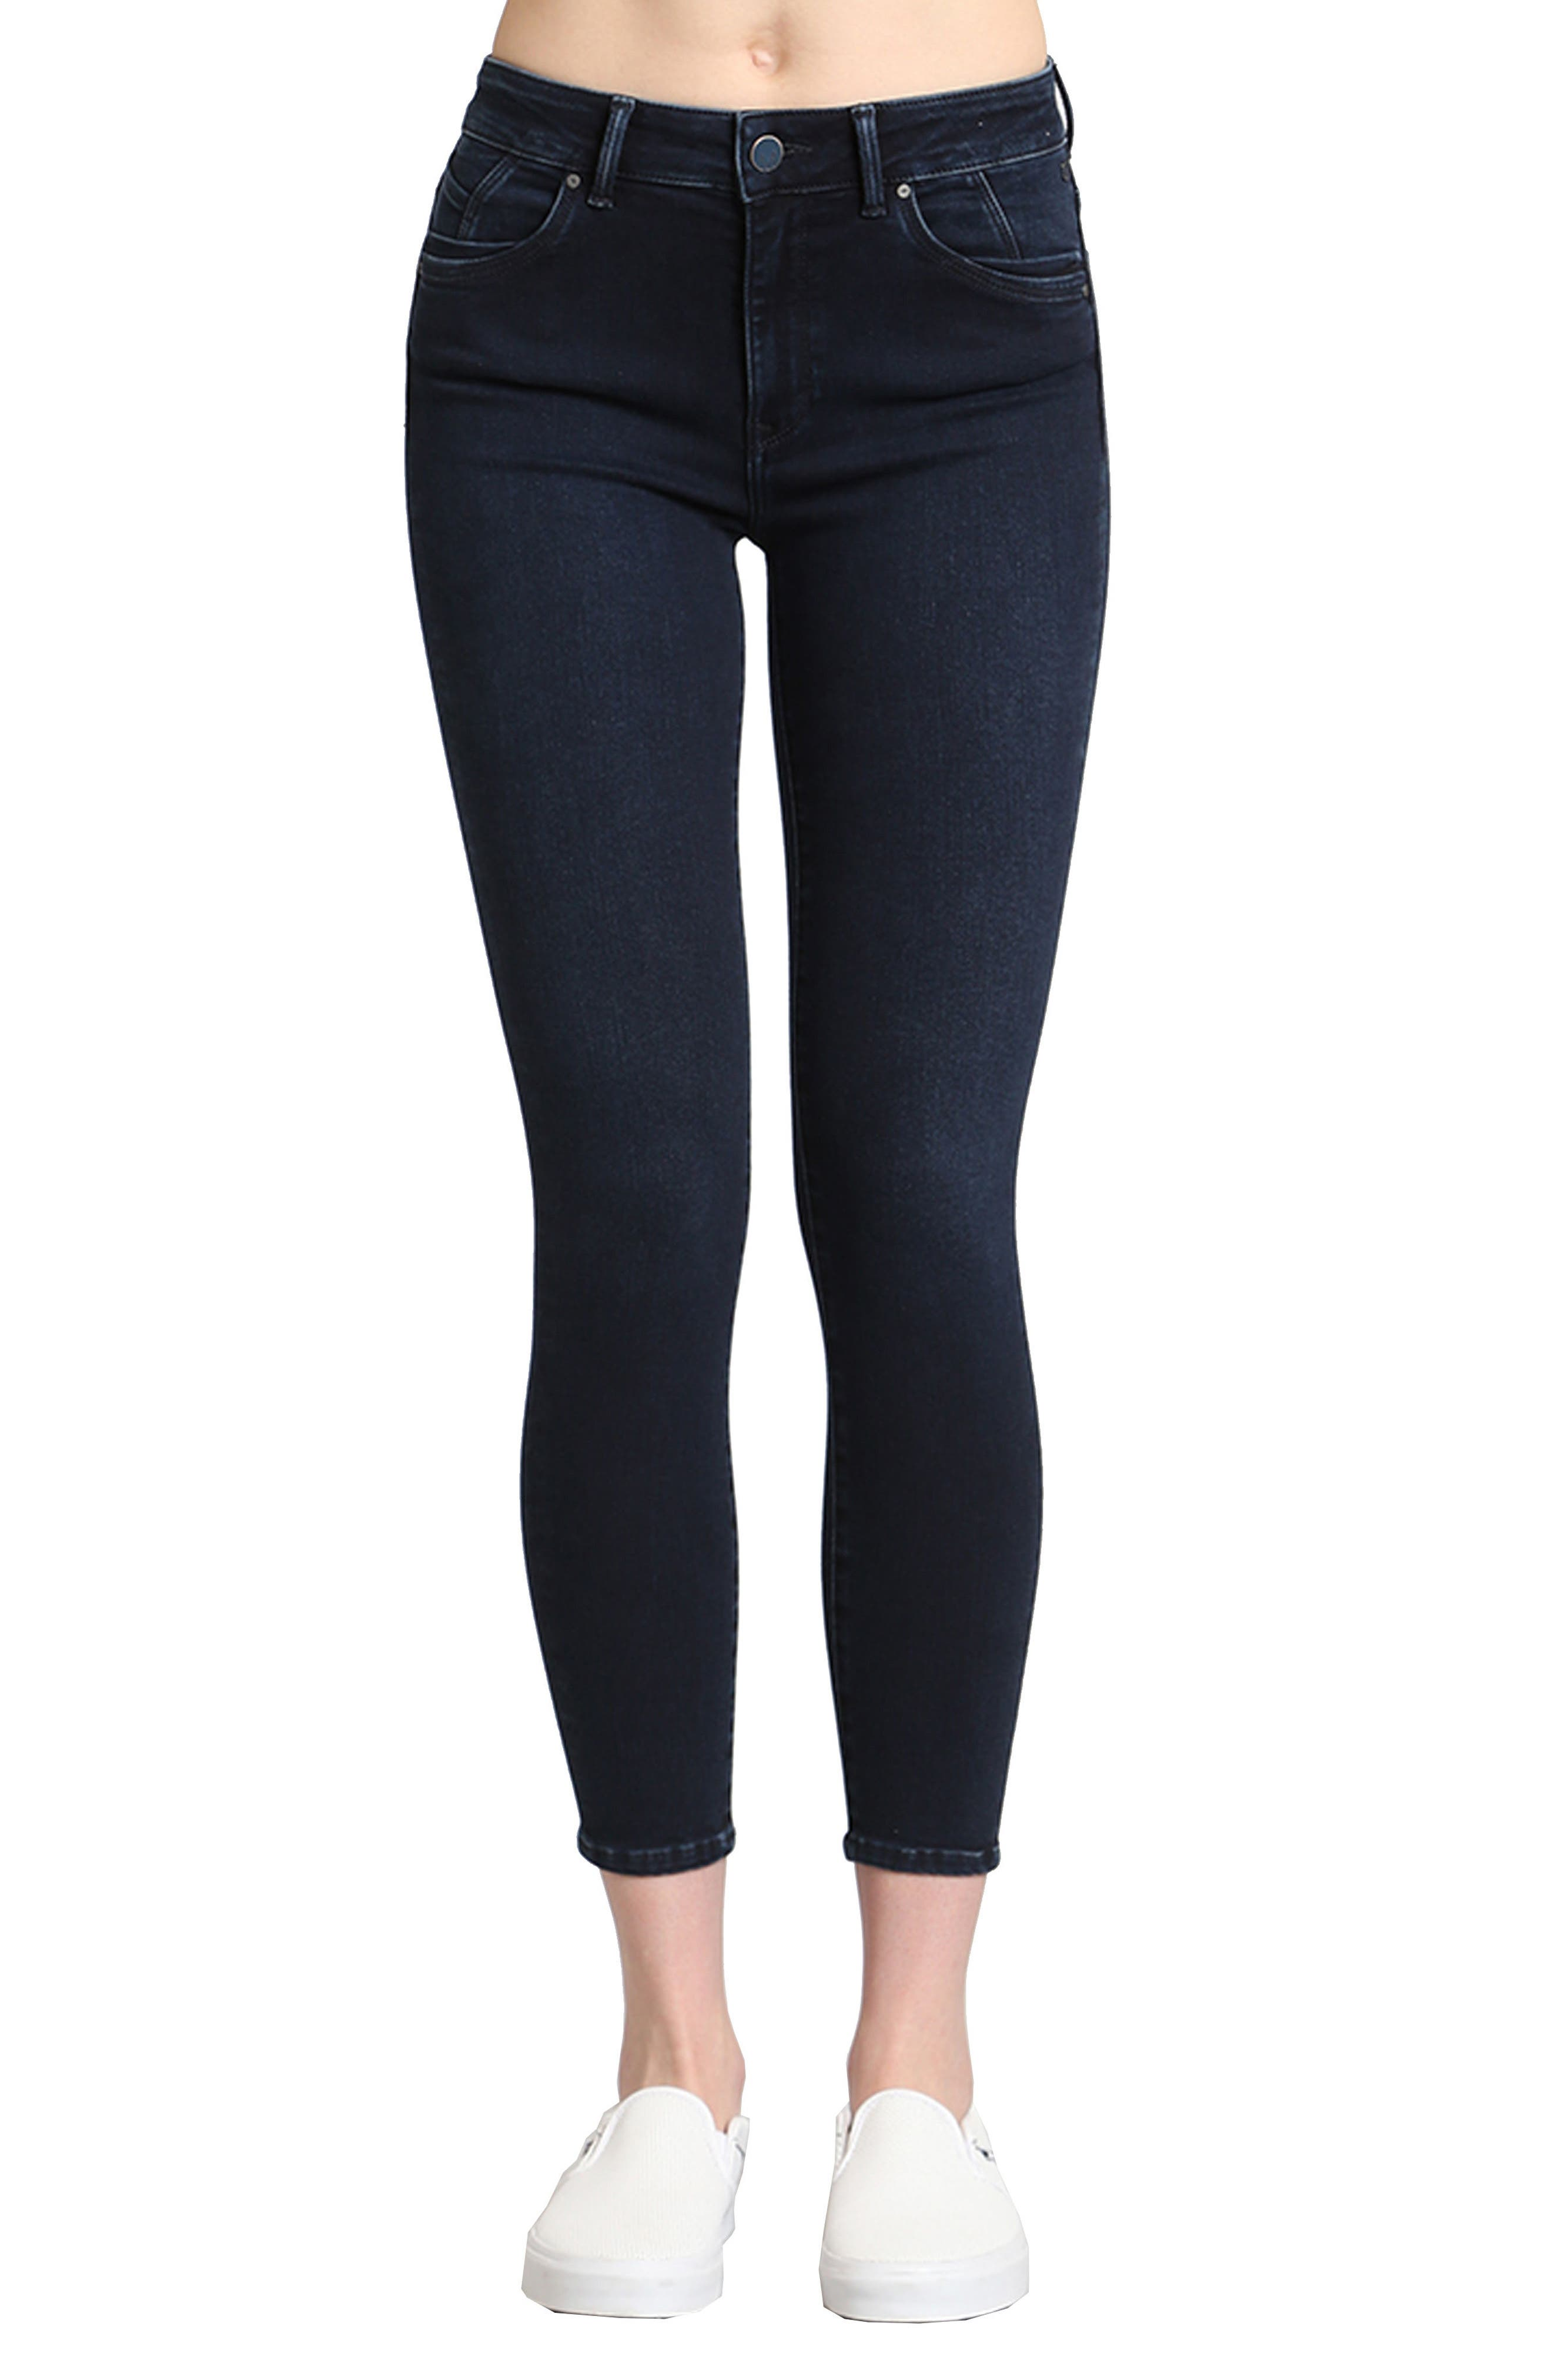 Tess Stretch Ankle Skinny Jeans,                             Main thumbnail 1, color,                             Ink Brushed Indigo Move